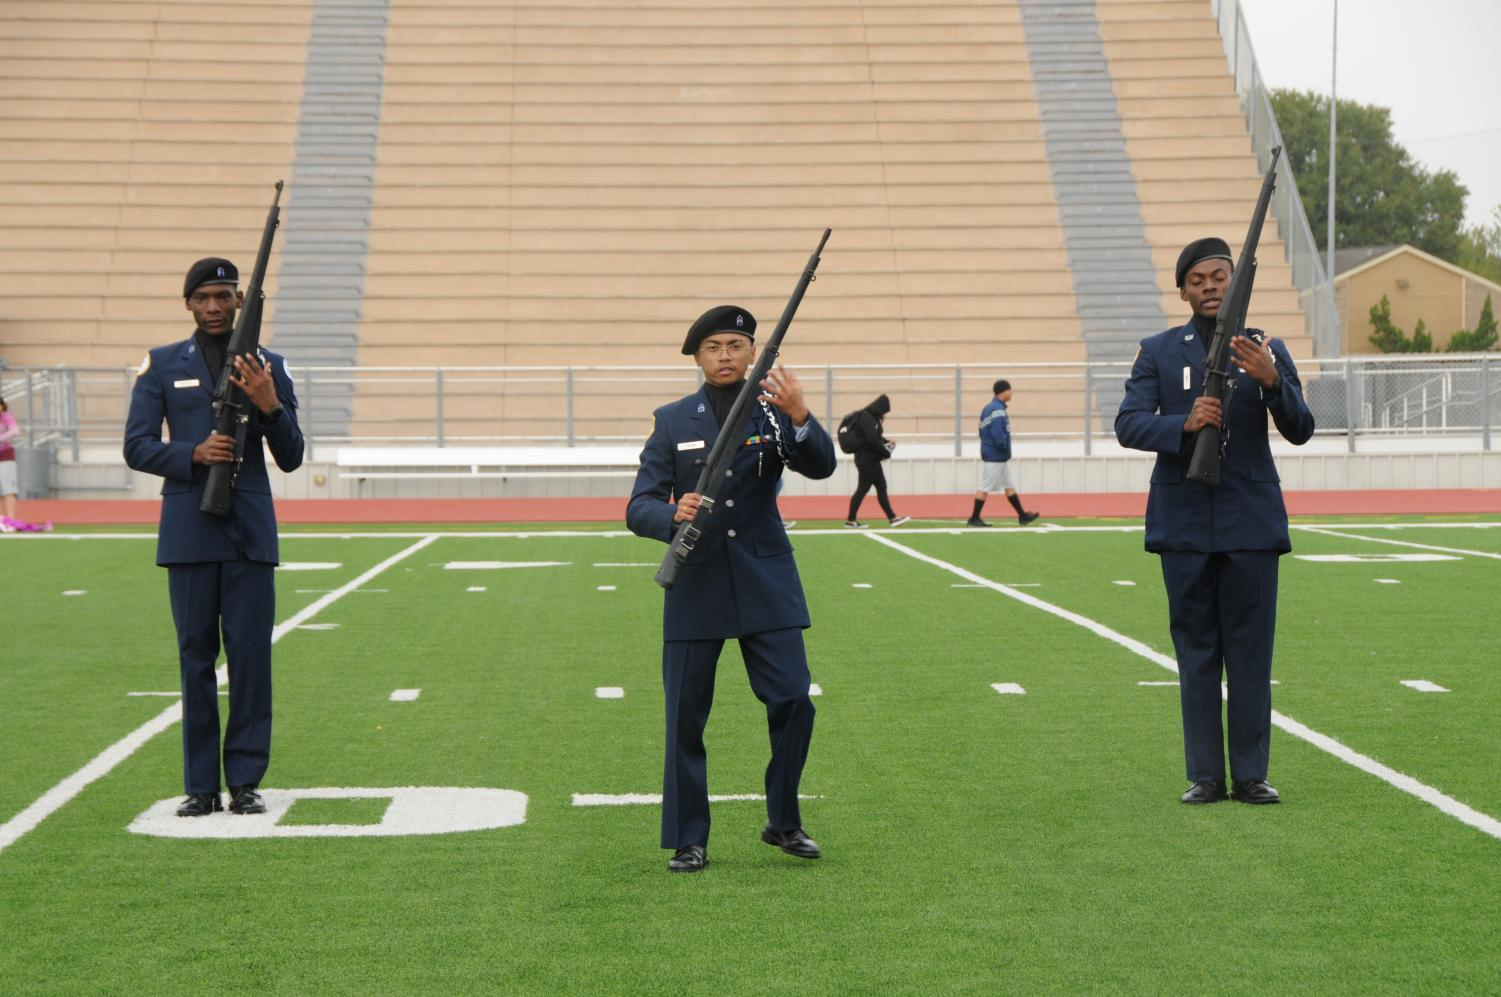 First+Drill+competition